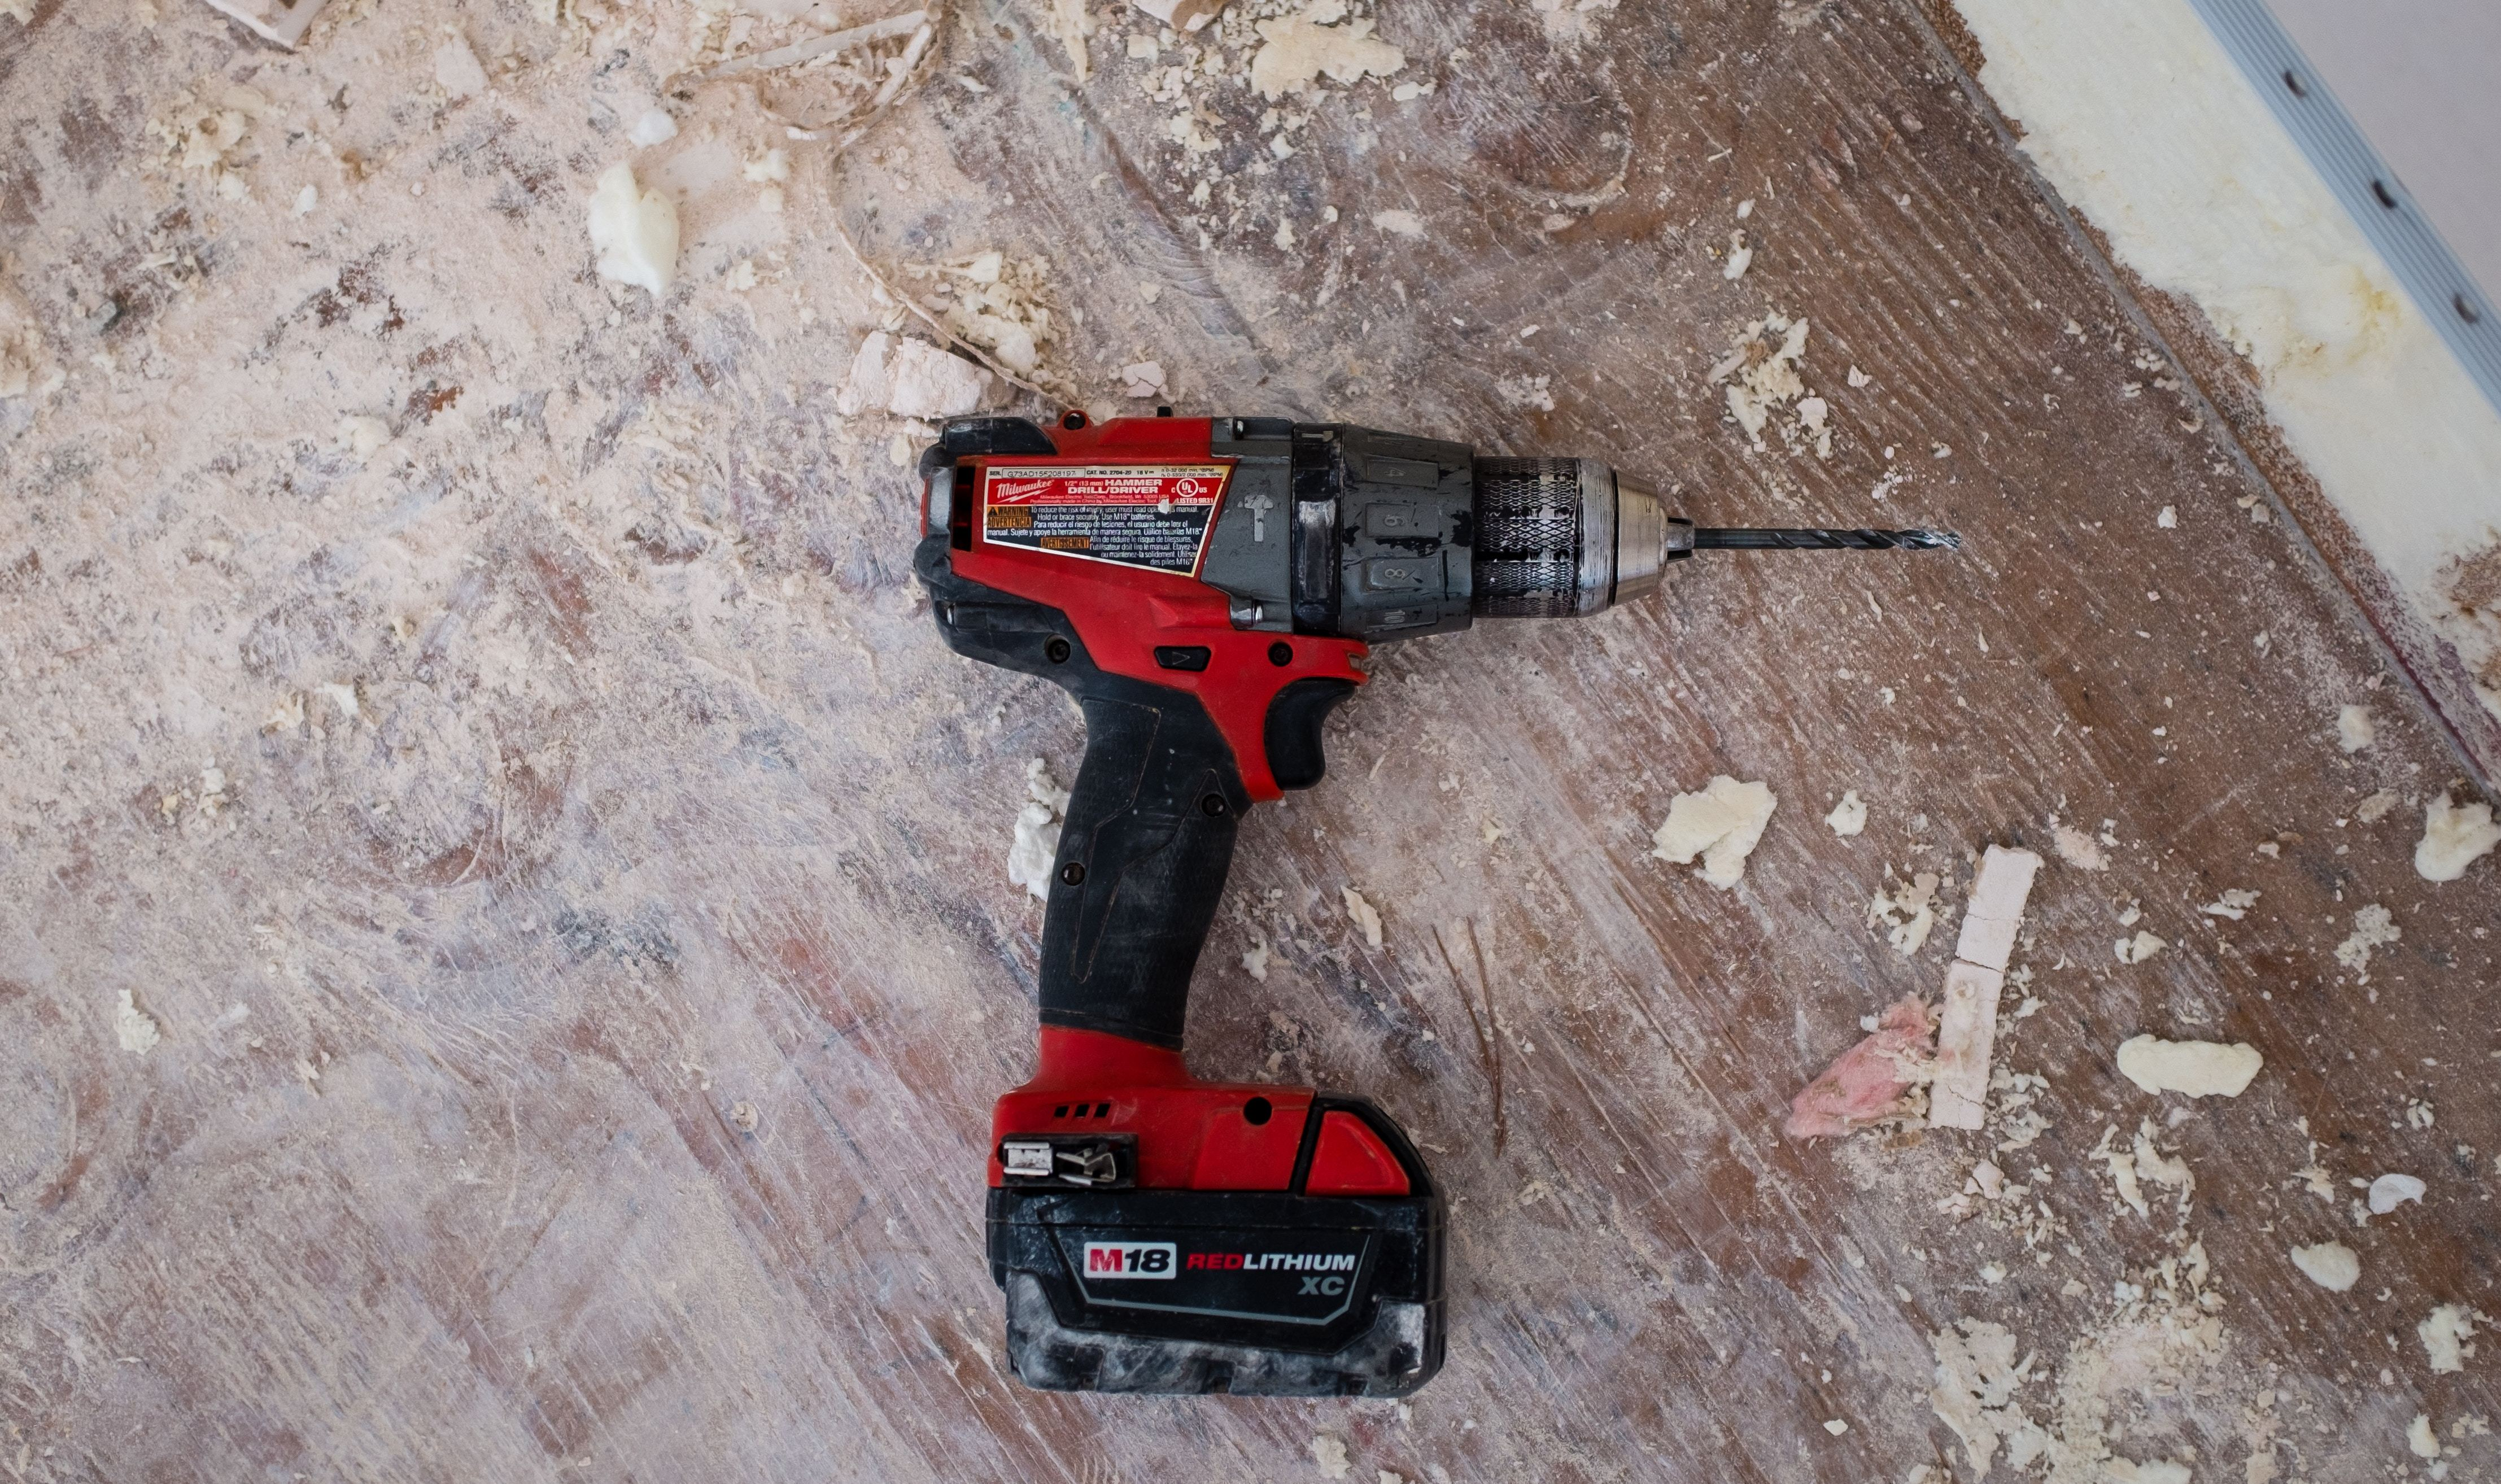 Ryobi p236 review: Is It The Impact Wrench For You